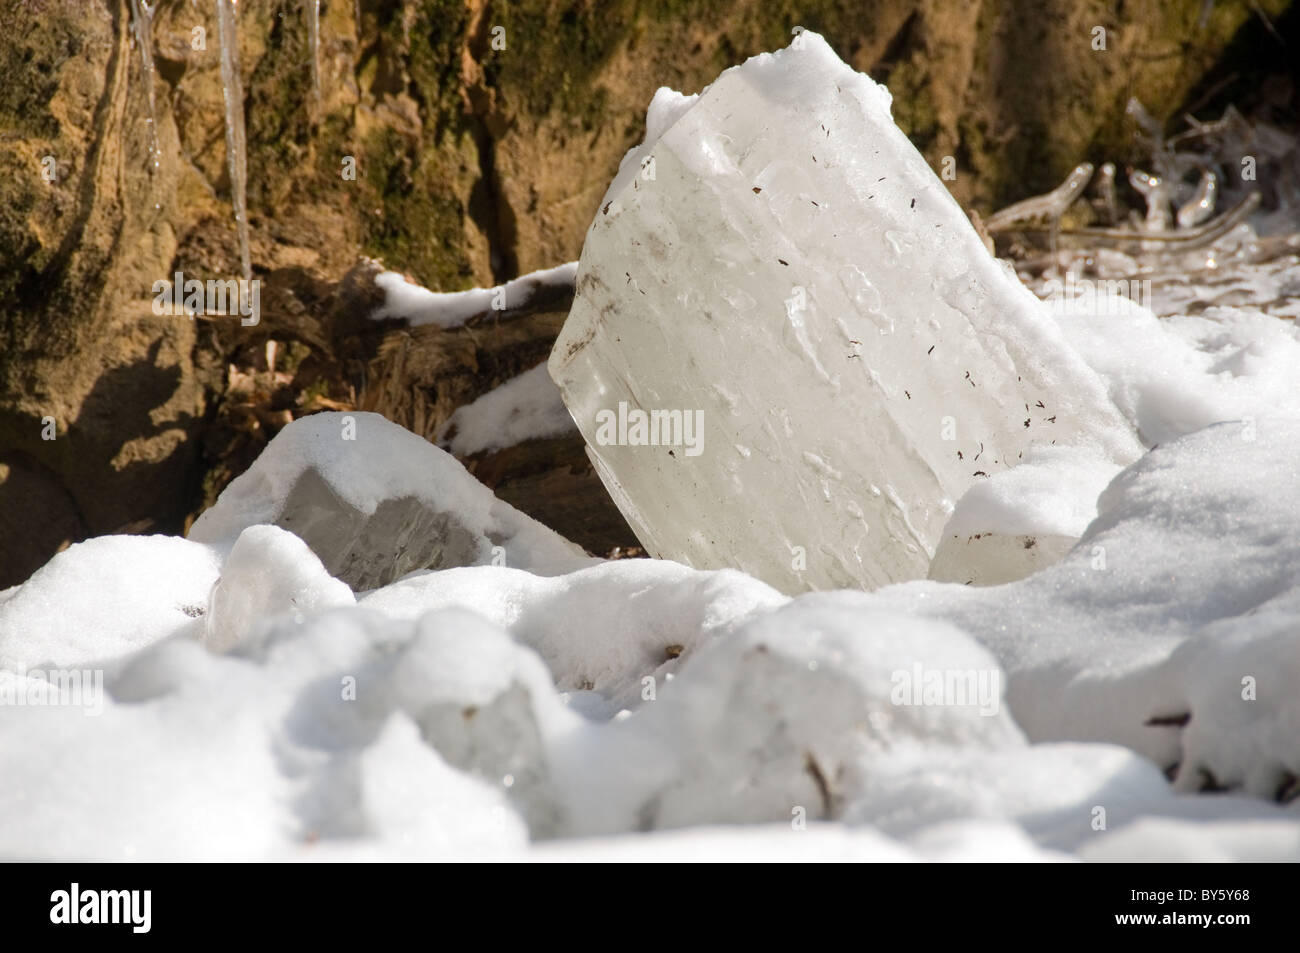 Frozen water at Hocking state park Ohio - Stock Image